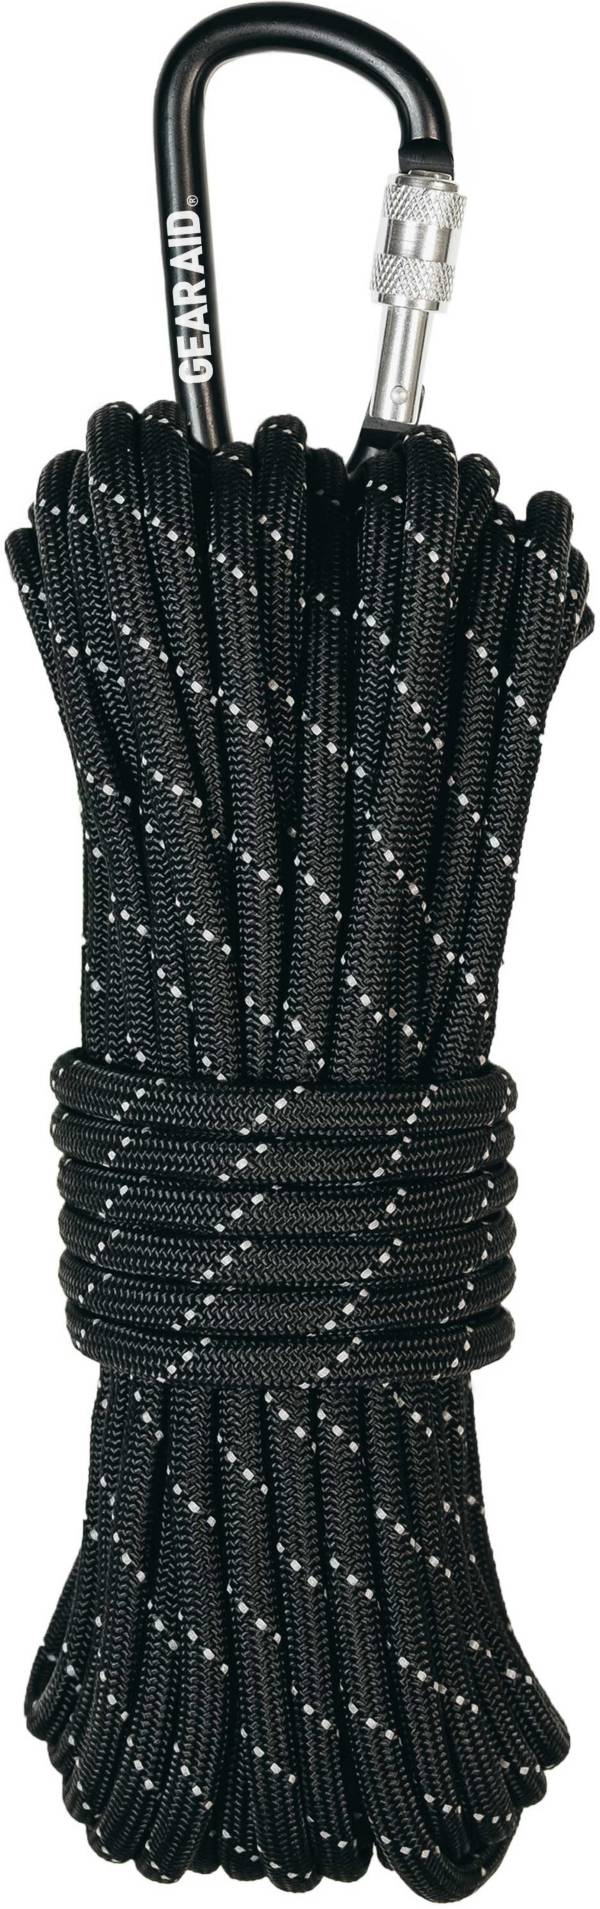 Coghlans 50' 1100 Paracord product image